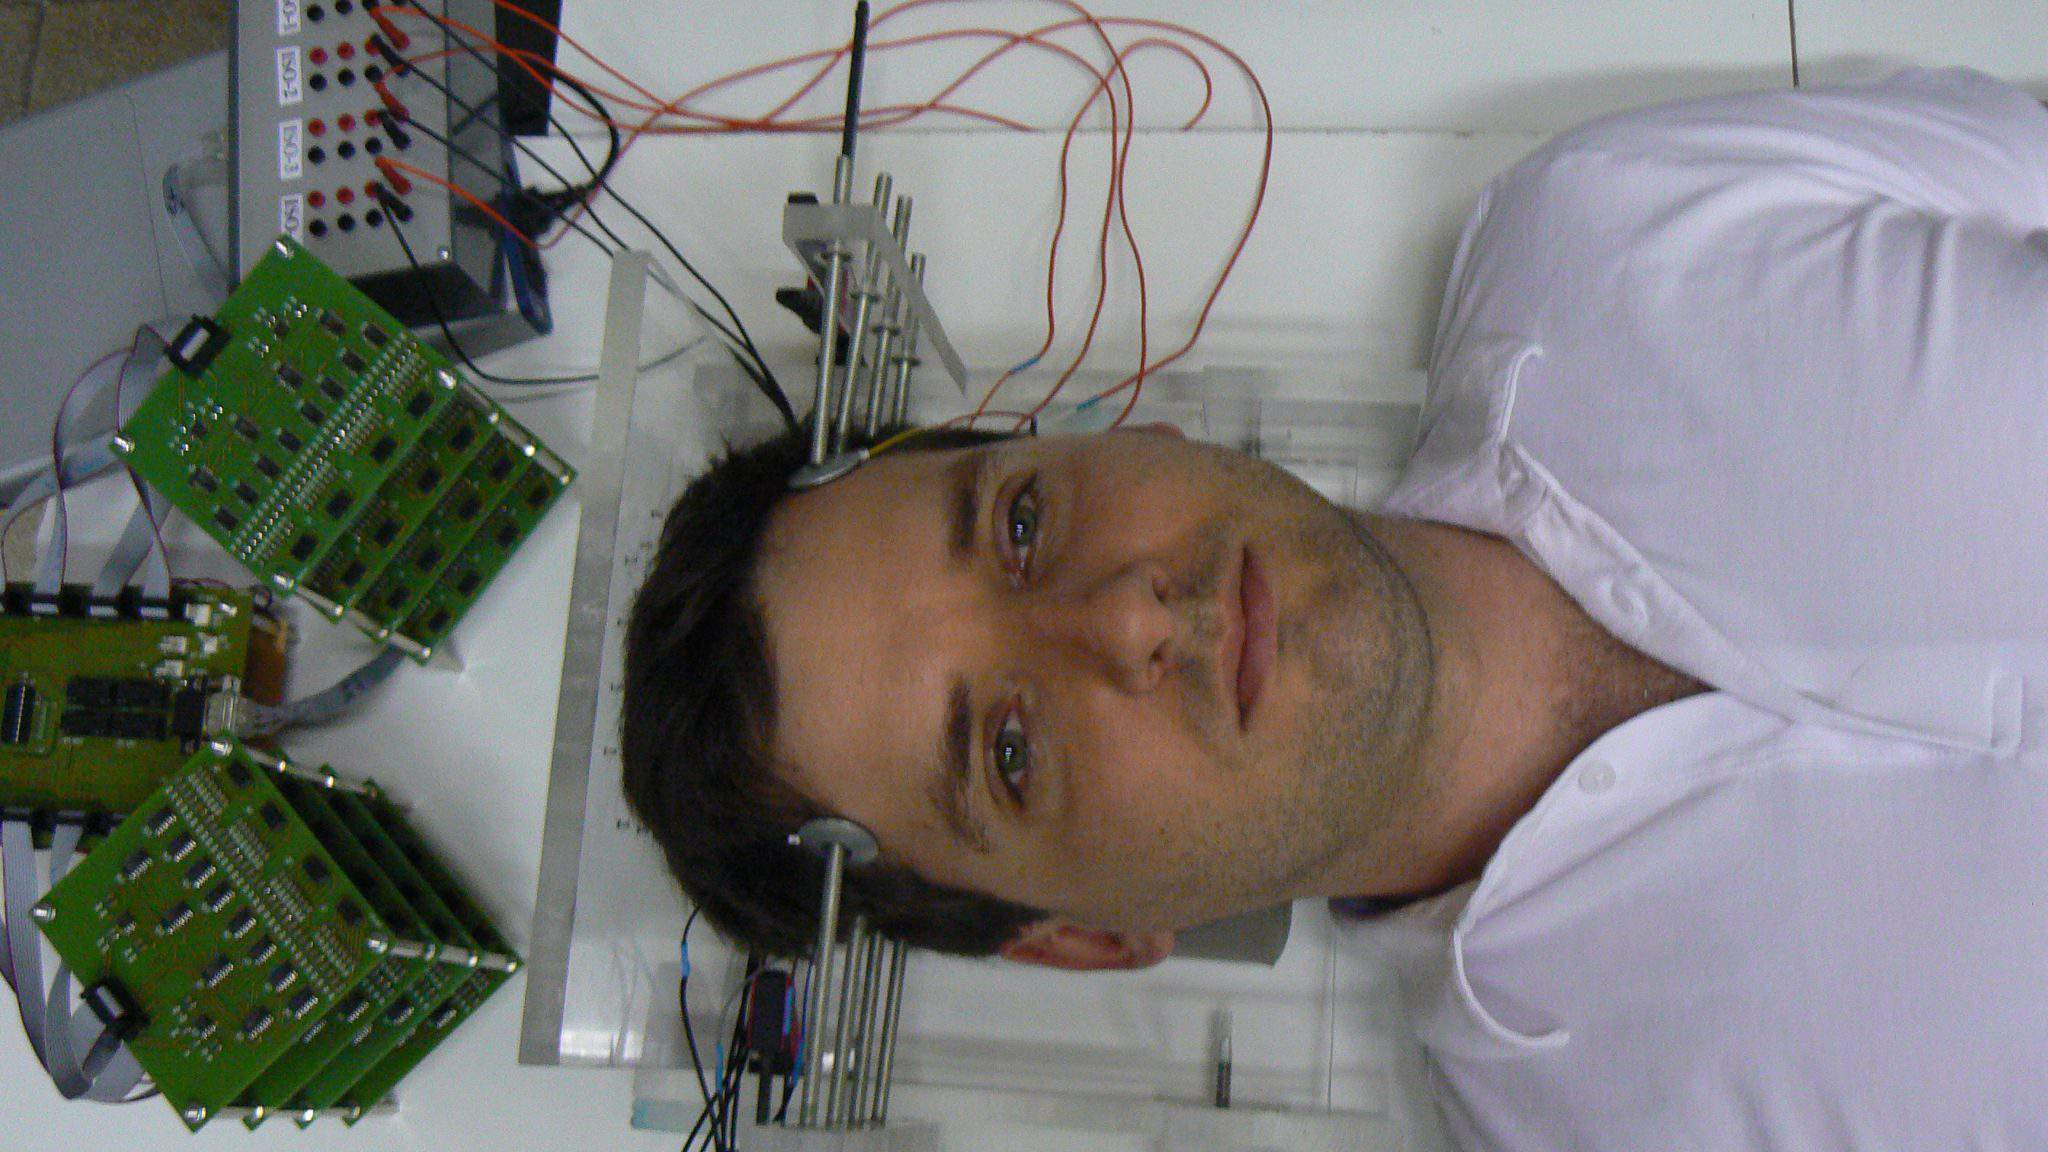 Antal Berényi SZTE brain defibrillator doctor researcher kutató University of Szeged